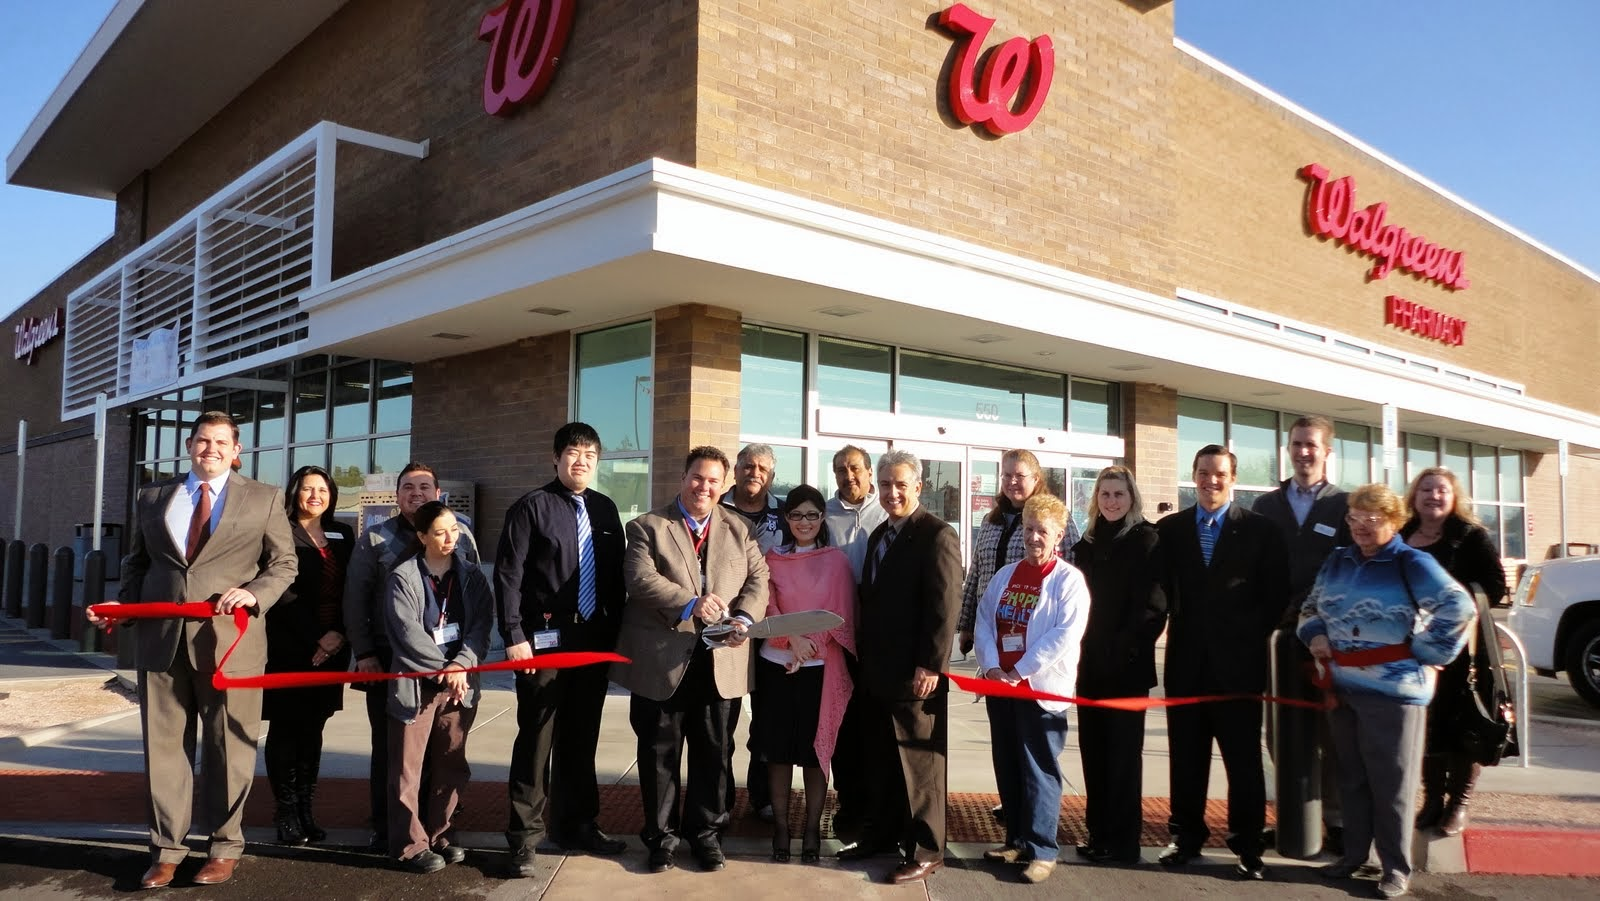 """Walgreens believes its customers deserve this new location.  One of their new key initiatives is to own """"well"""" as a company and as customers walk around the new location they can see that Walgreens is helping people everyday get, stay and live """"well""""."""